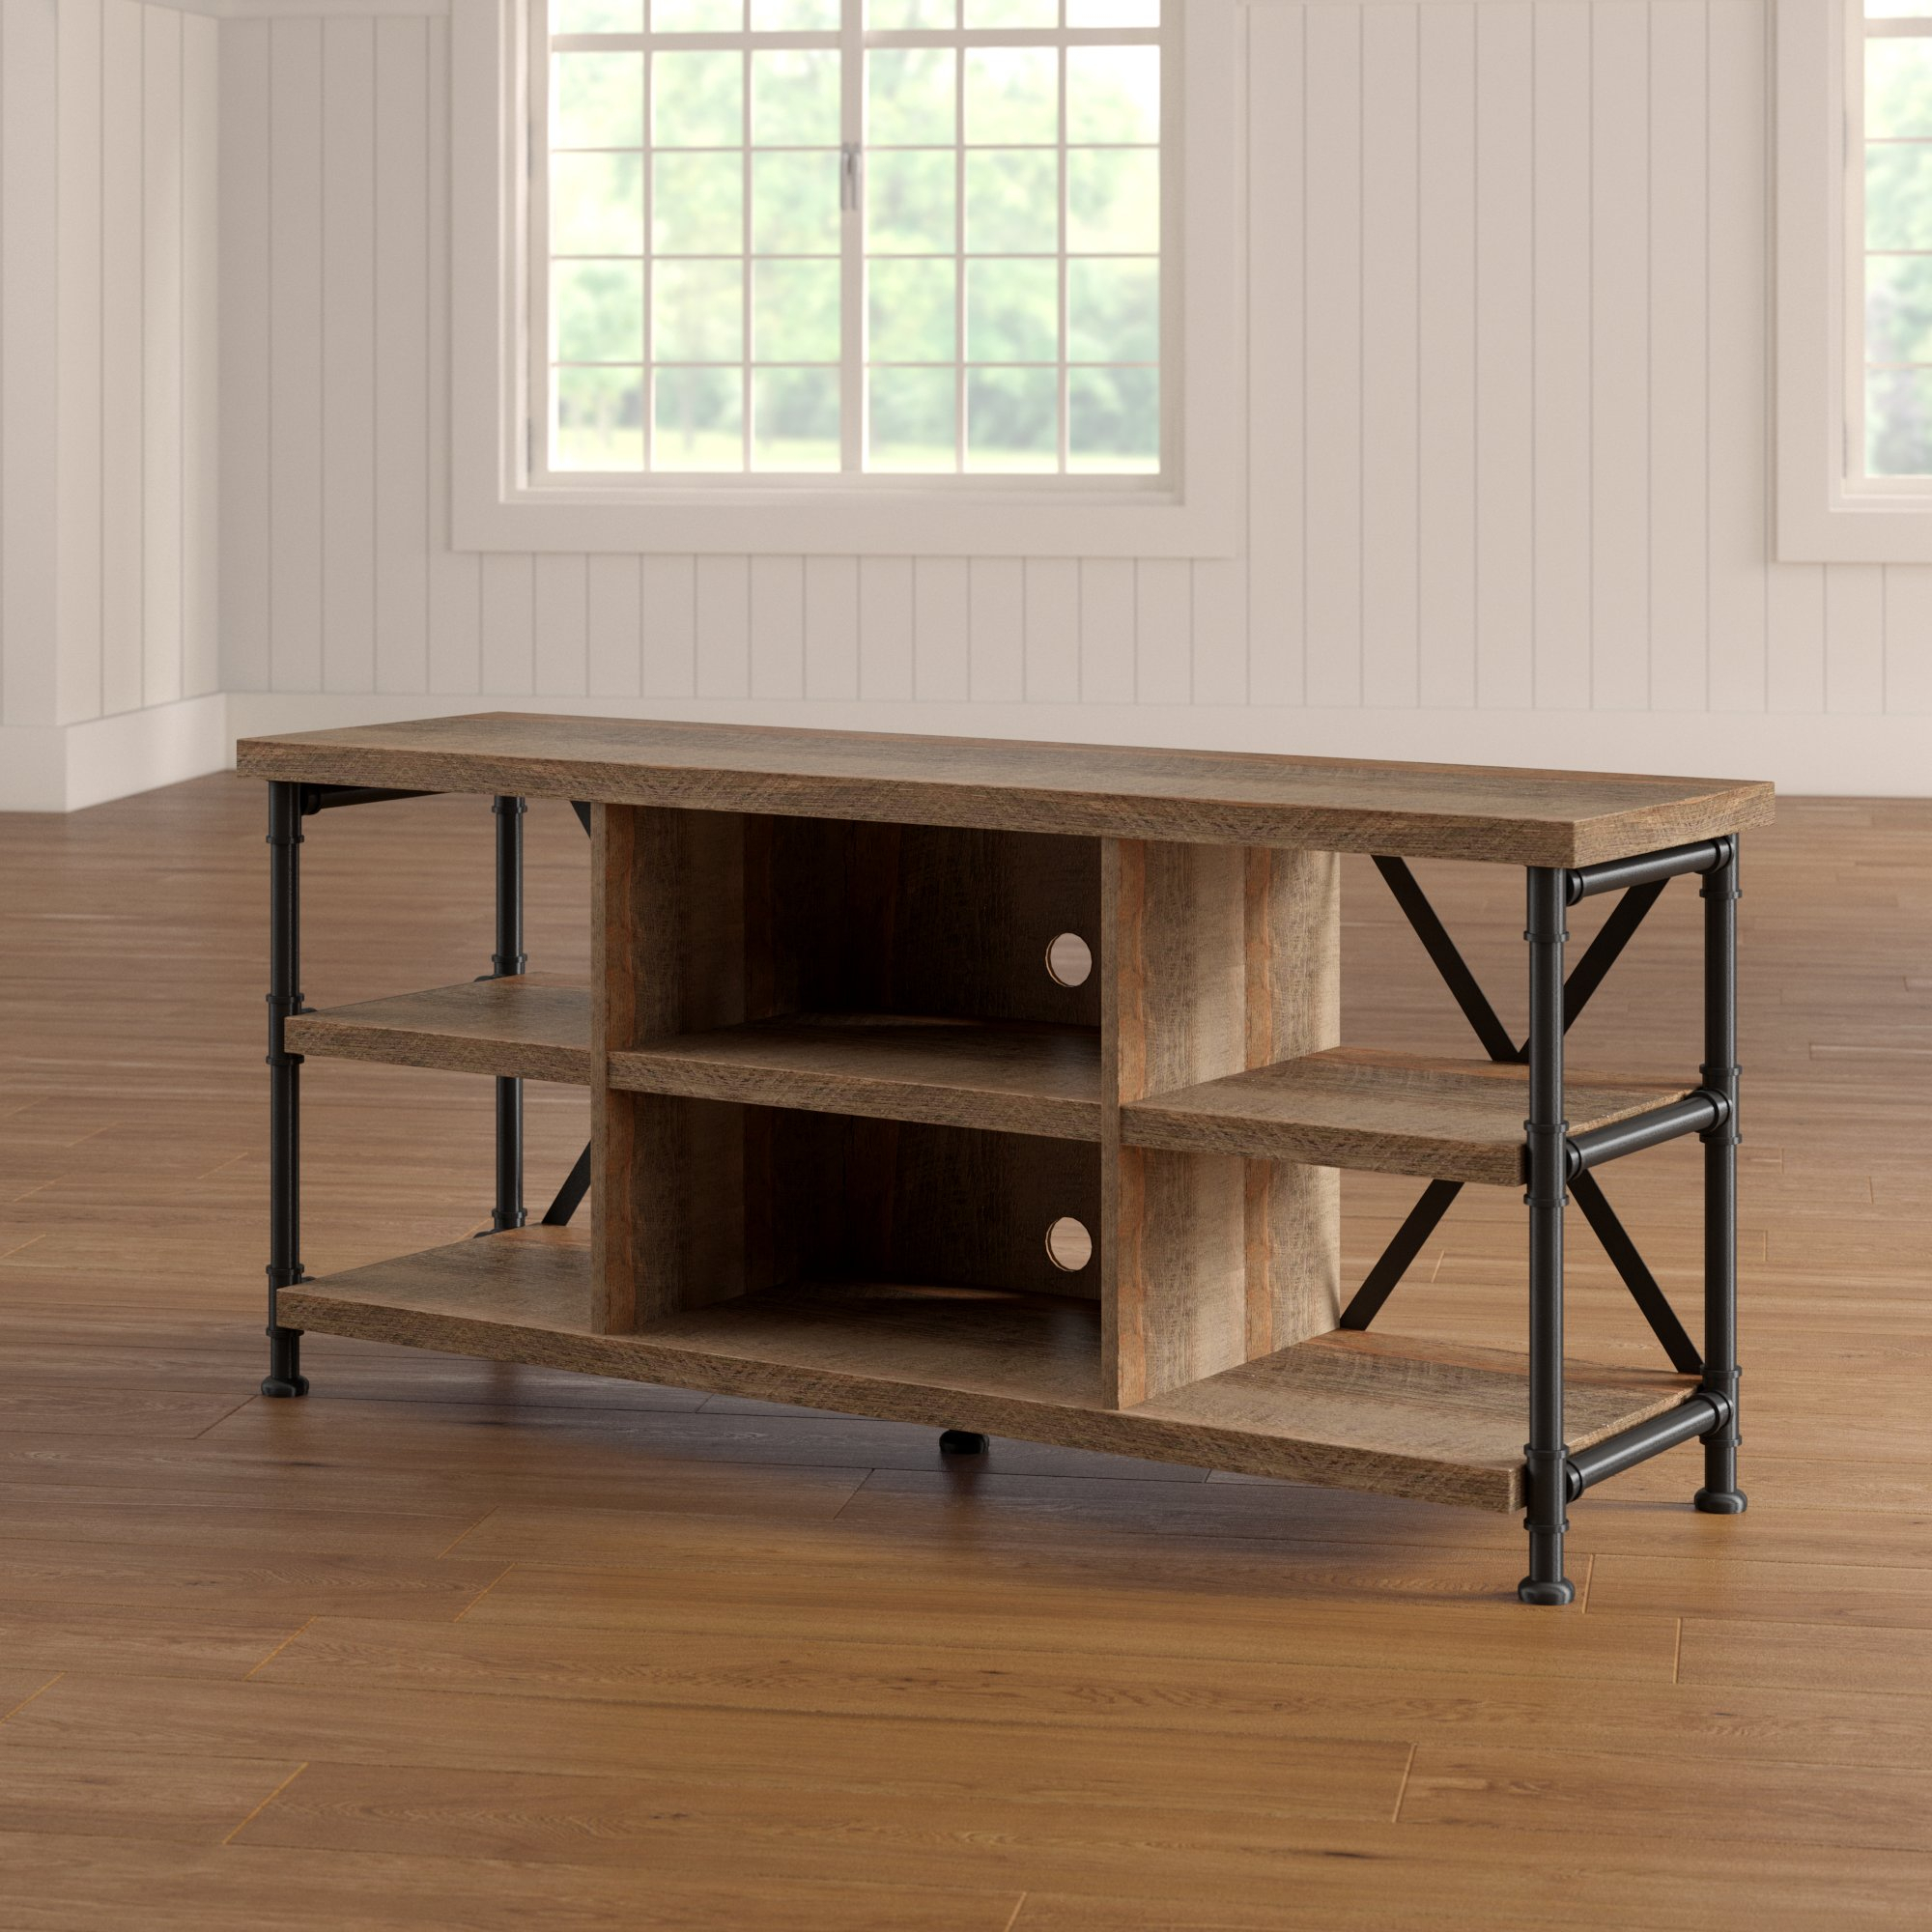 Industrial Tv Stands You'll Love | Wayfair intended for Walton 72 Inch Tv Stands (Image 14 of 30)